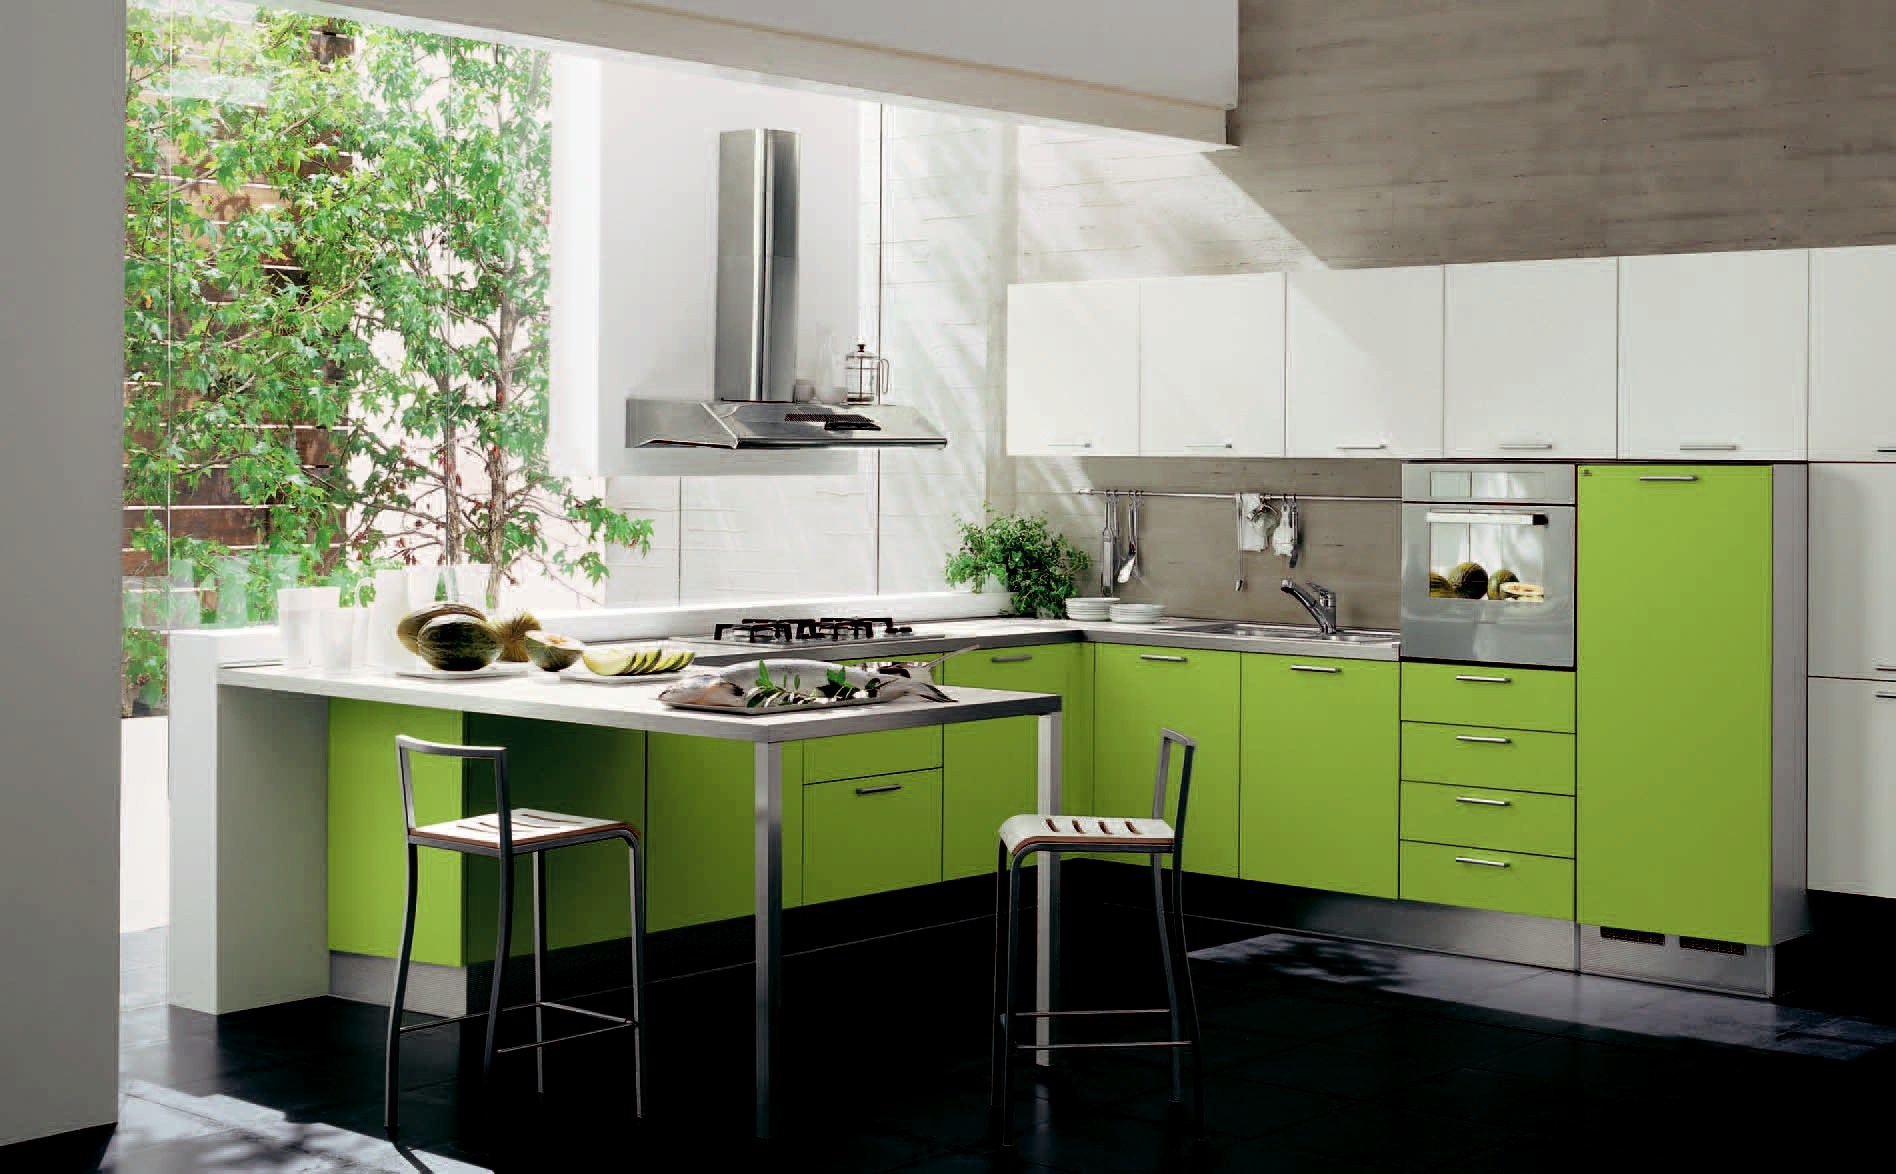 refreshing kitchen decorative kitchen design ideas set